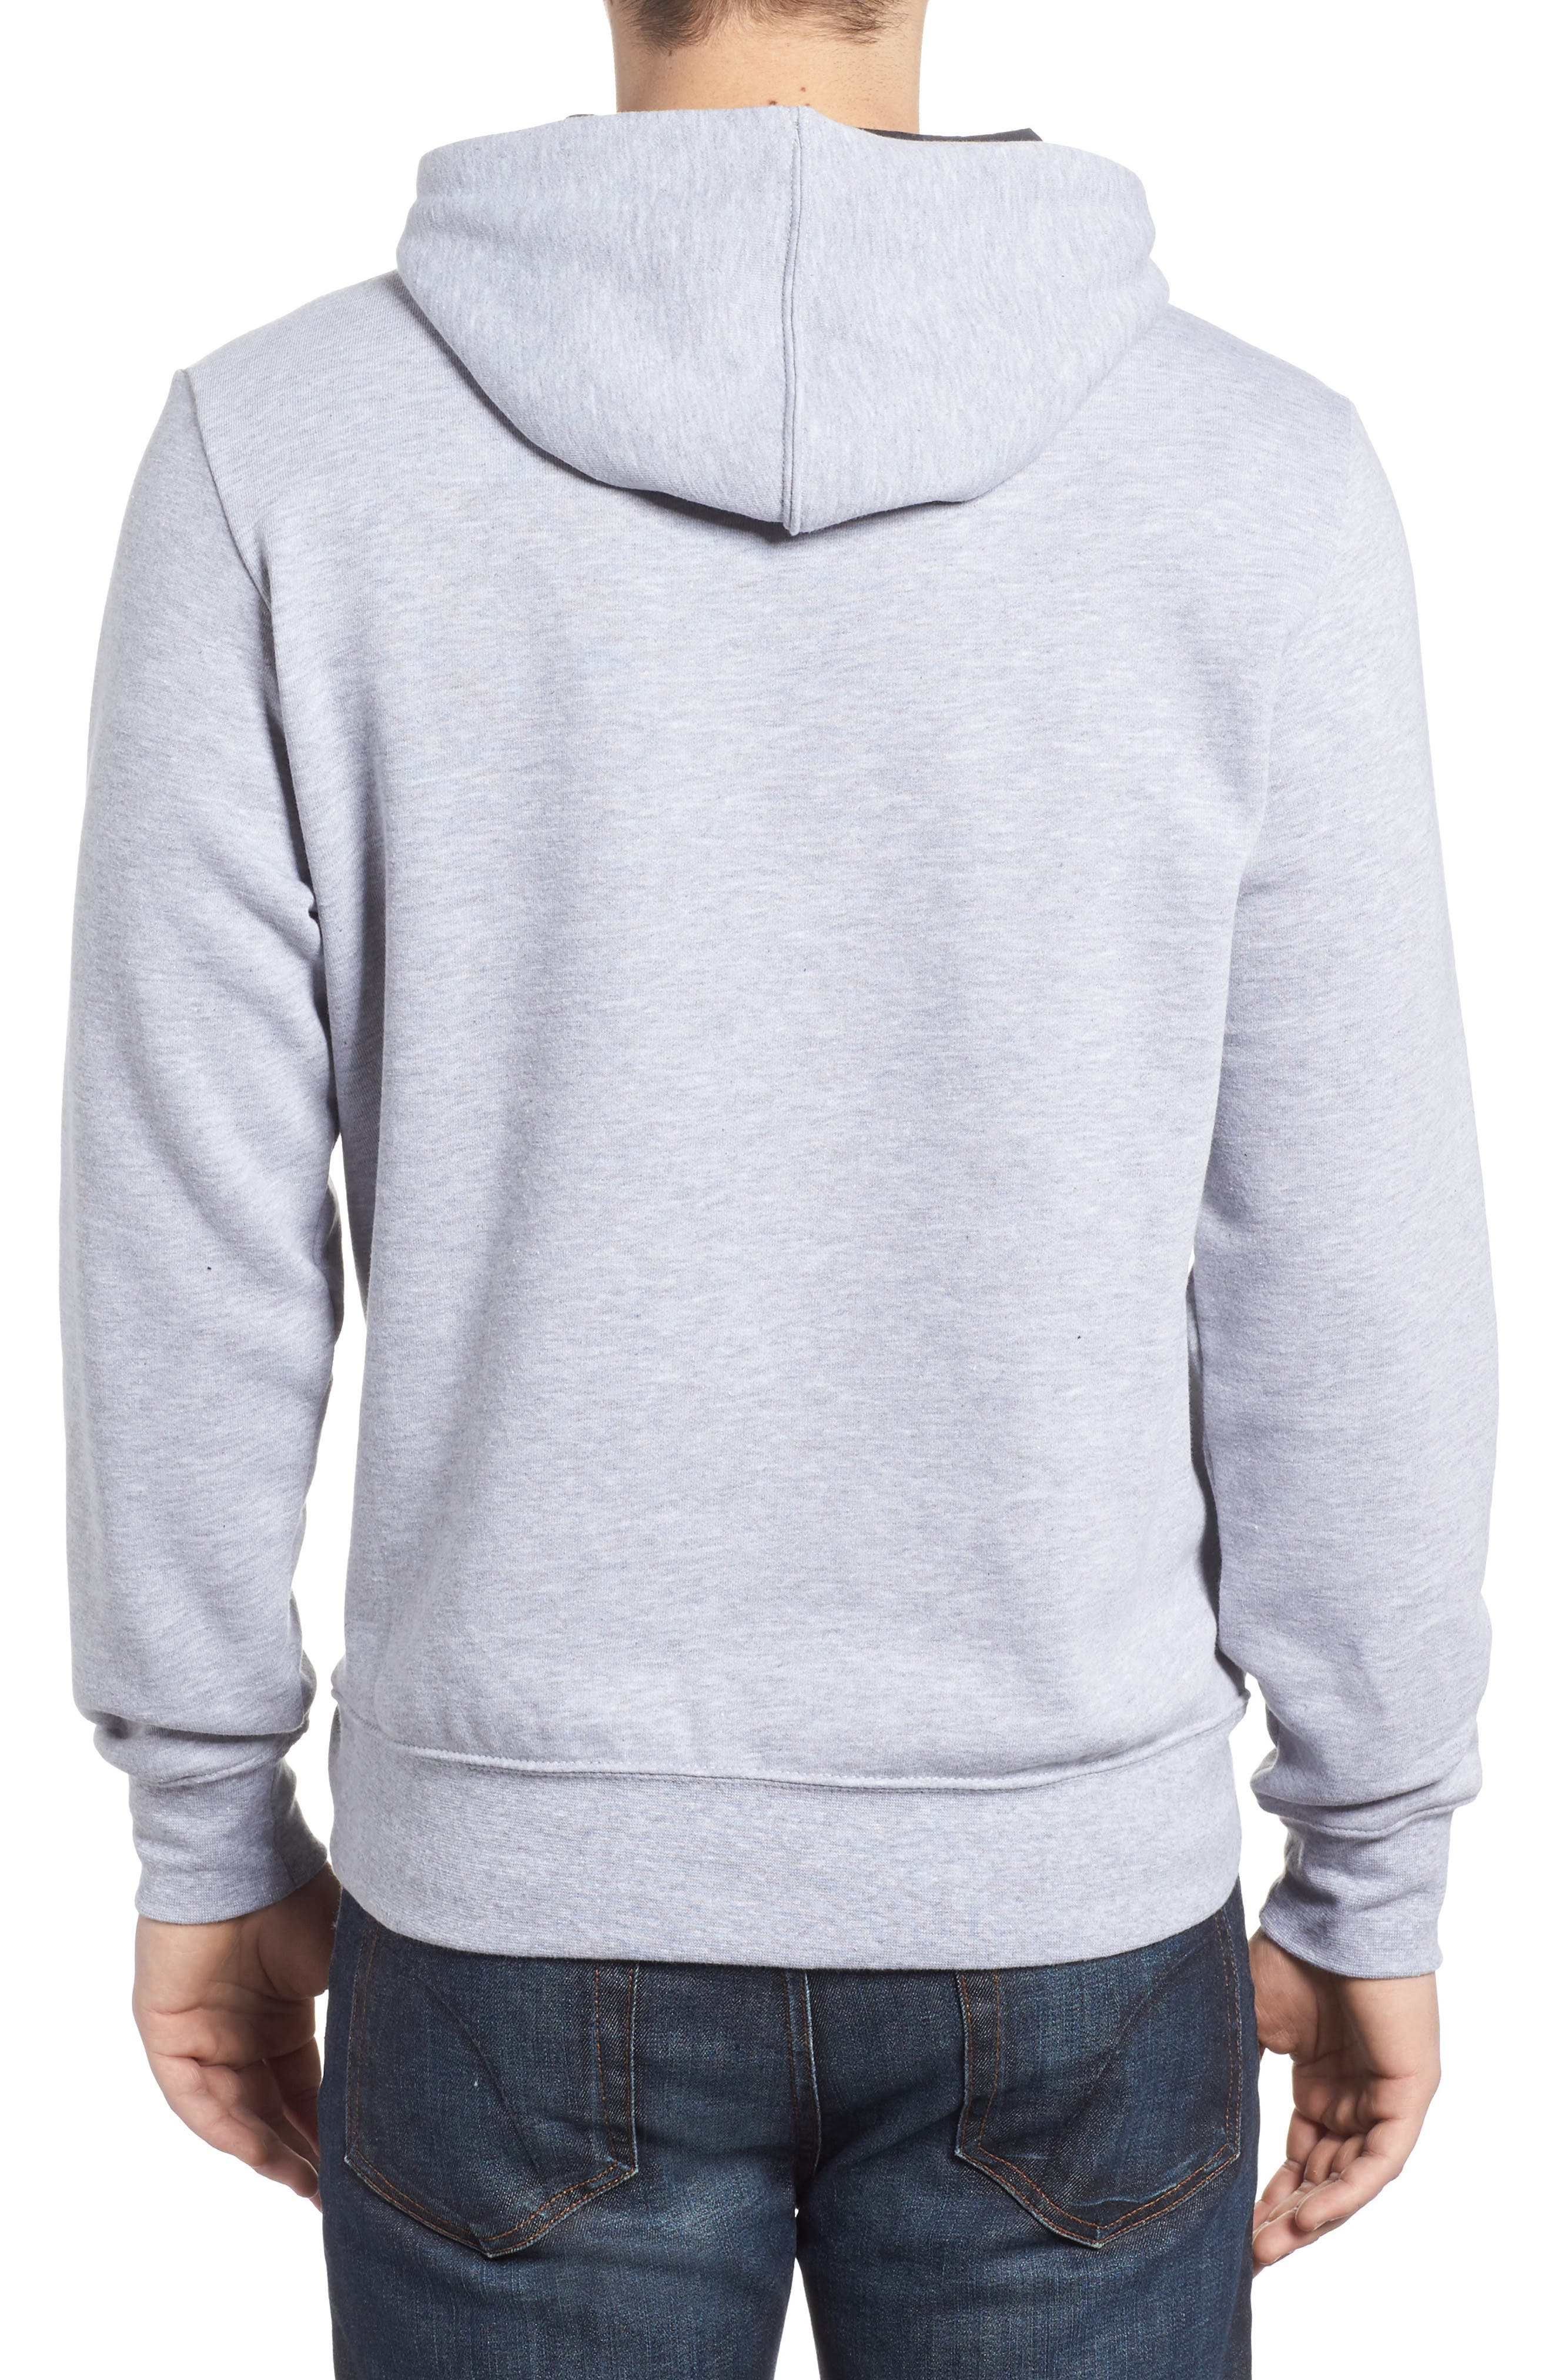 Trivert Cotton Blend Hoodie,                             Alternate thumbnail 2, color,                             Light Grey/ Asphalt Grey Multi